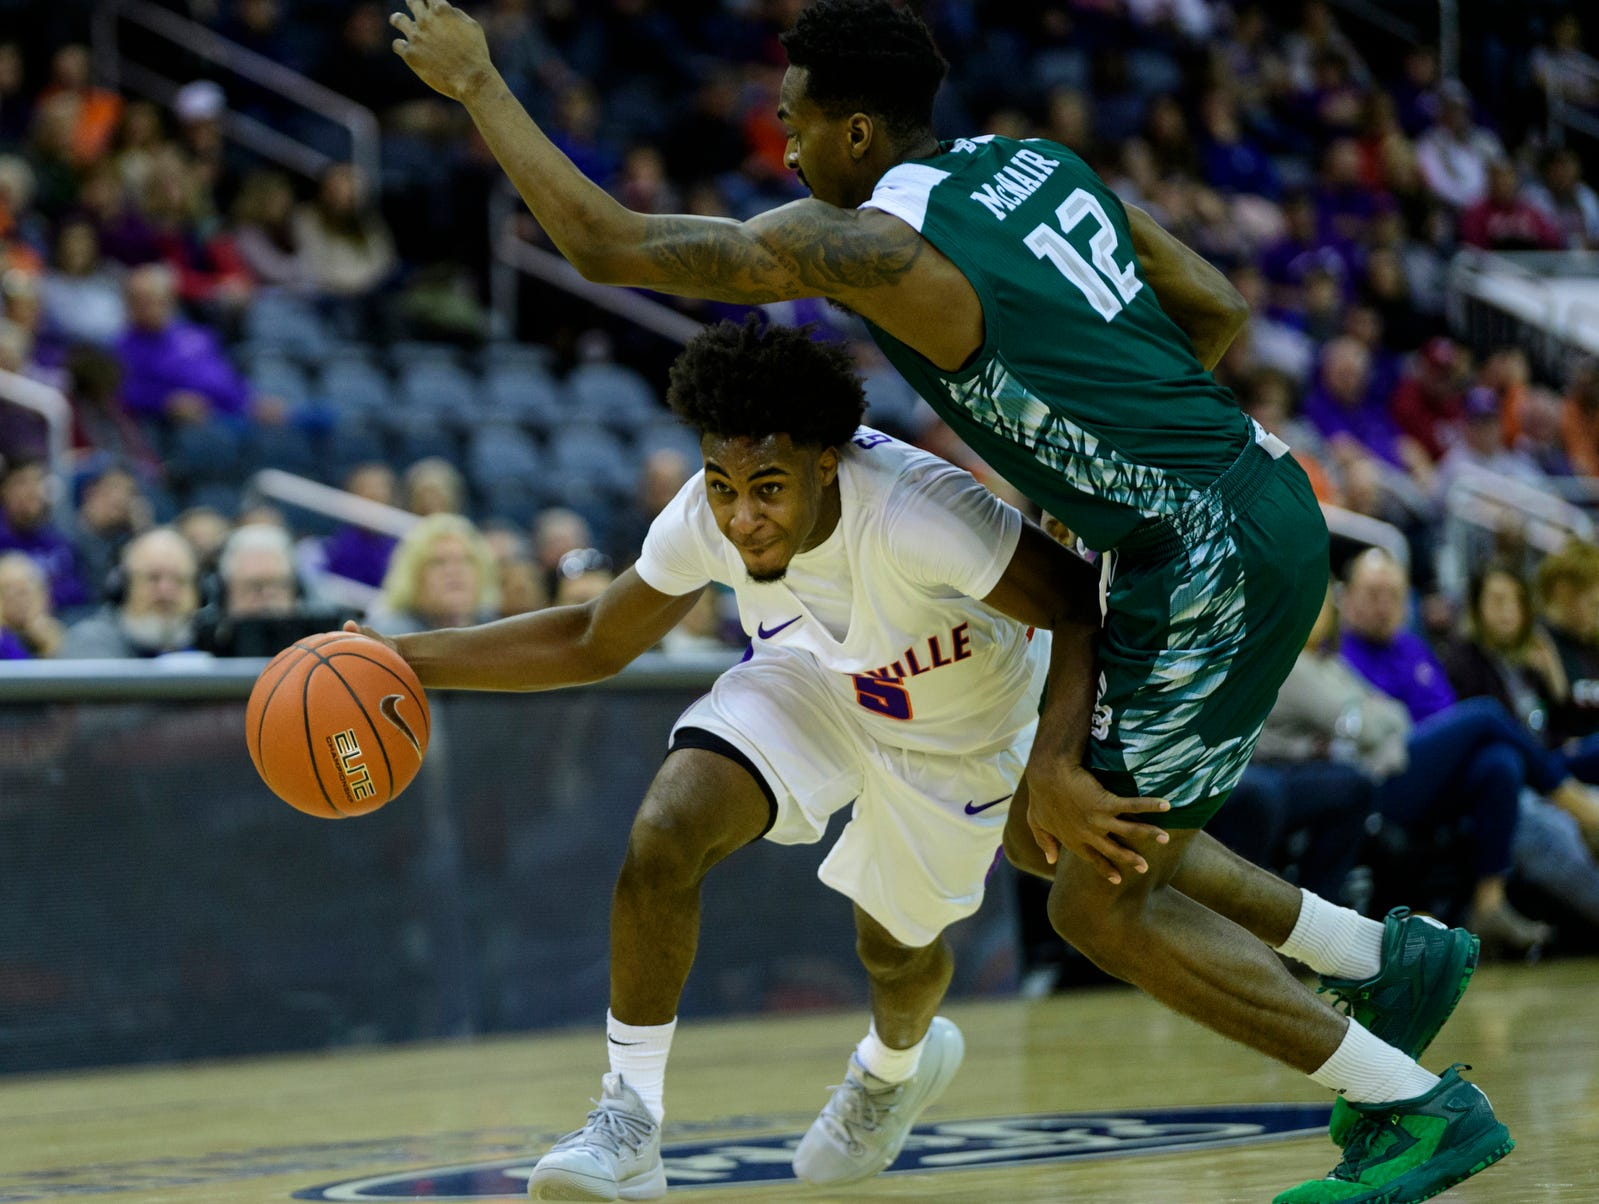 University of Evansville's Shamar Givance (5) rushes past Green Bay's Josh McNair (12) during the first half at Ford Center in Evansville, Ind., Saturday, Dec. 22, 2018.